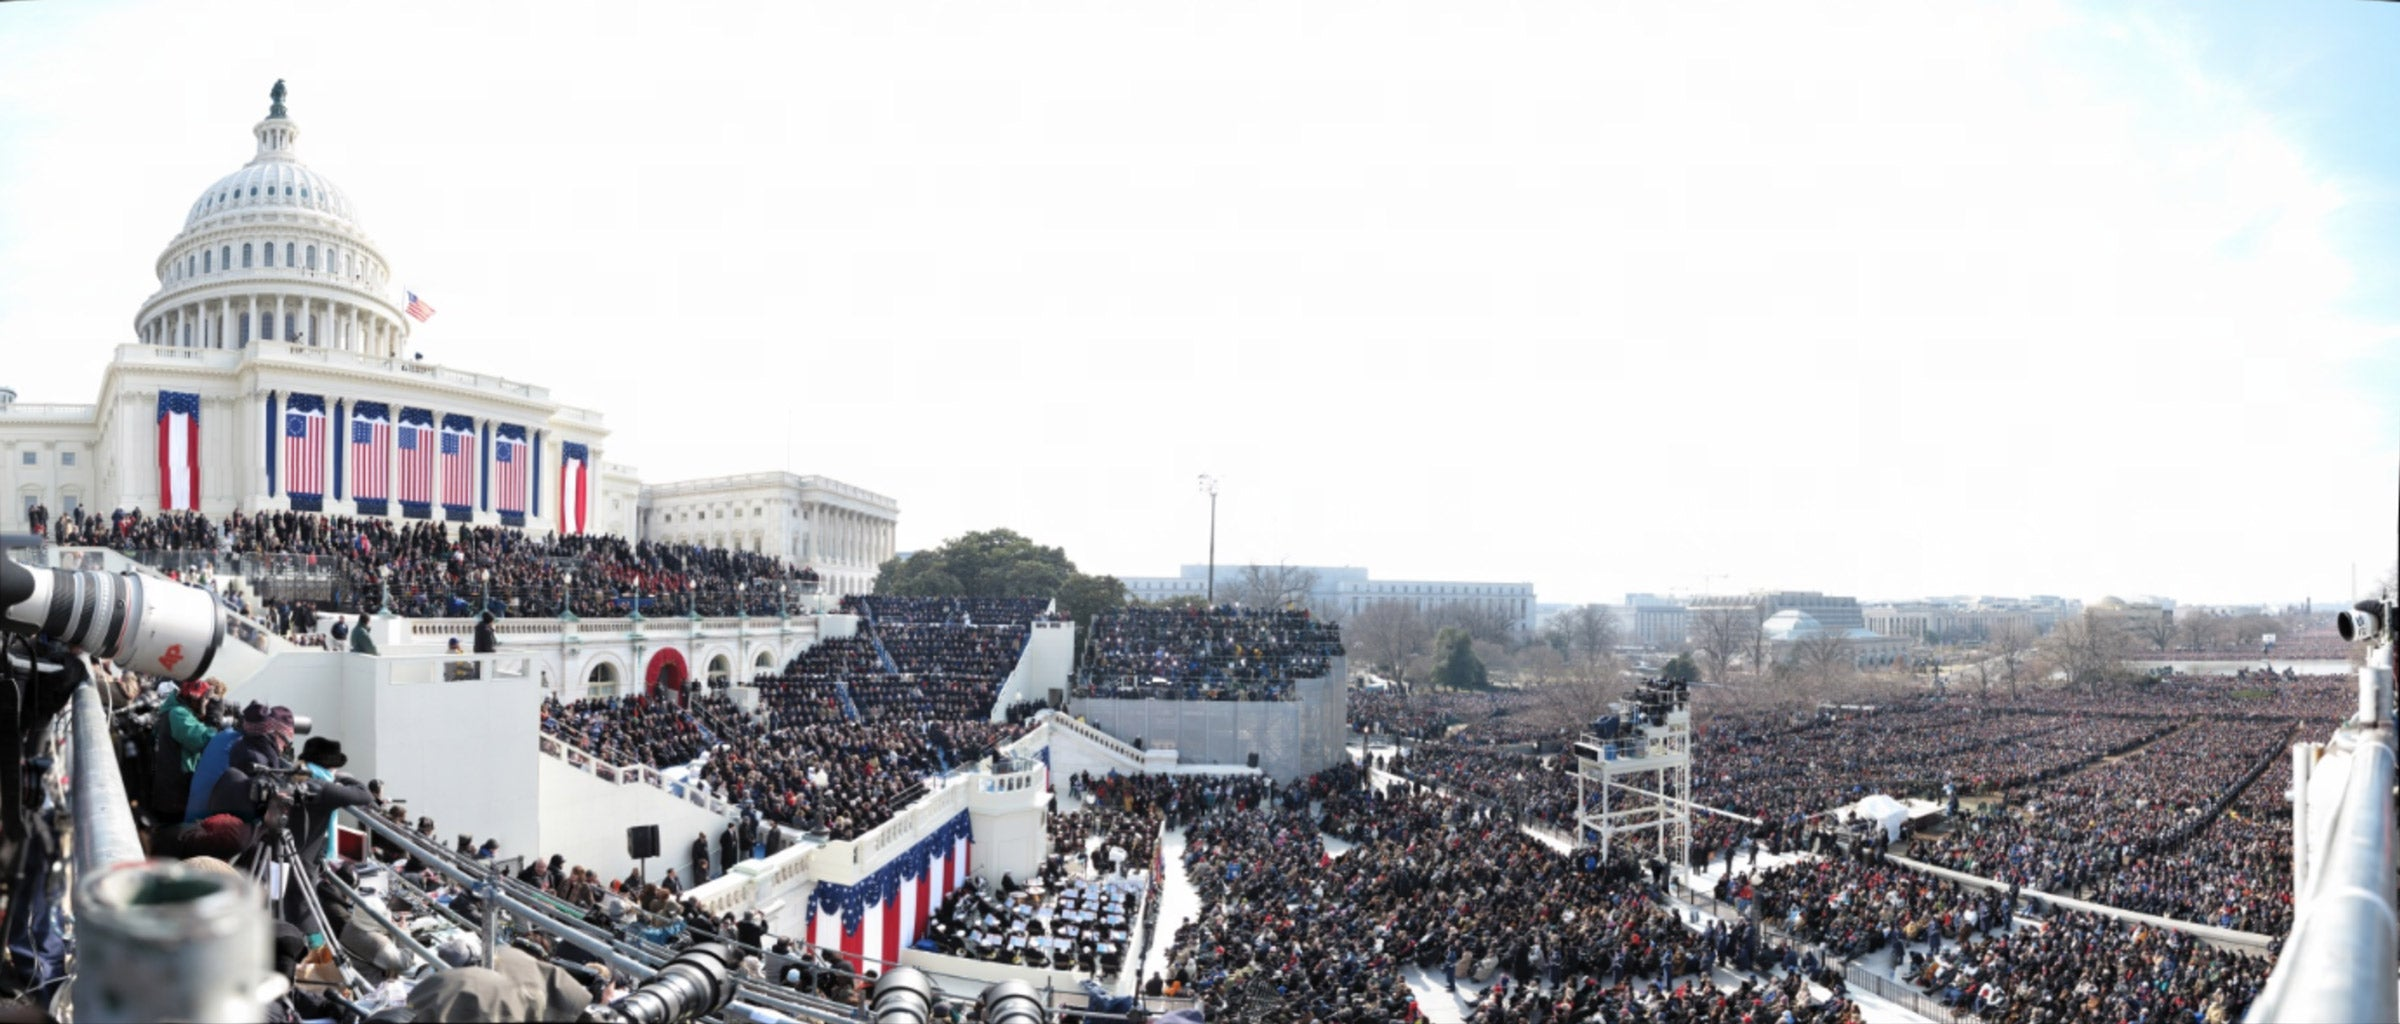 Obama's Inauguration panoramic photo